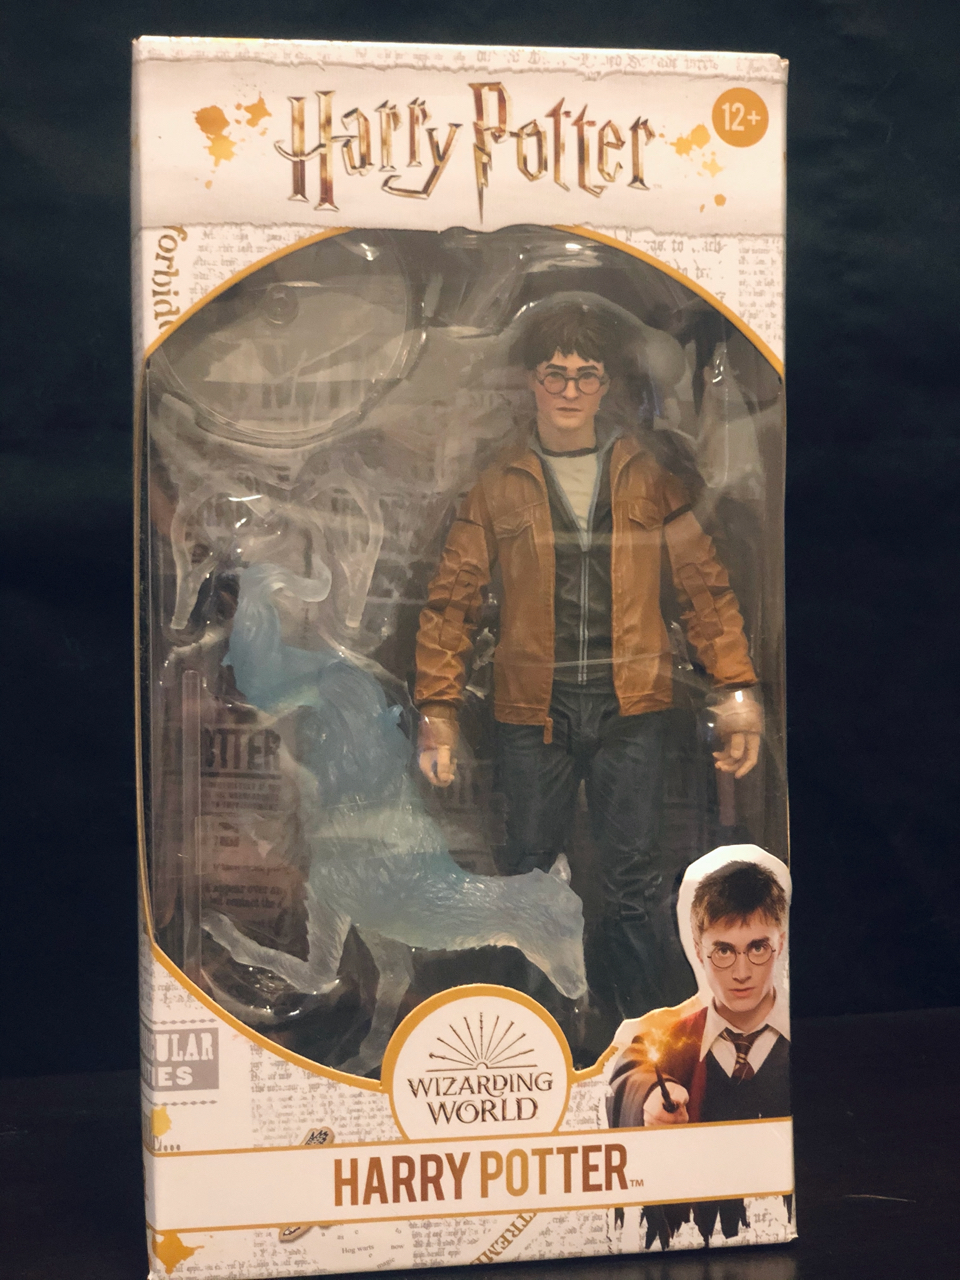 Harry Potter in the box